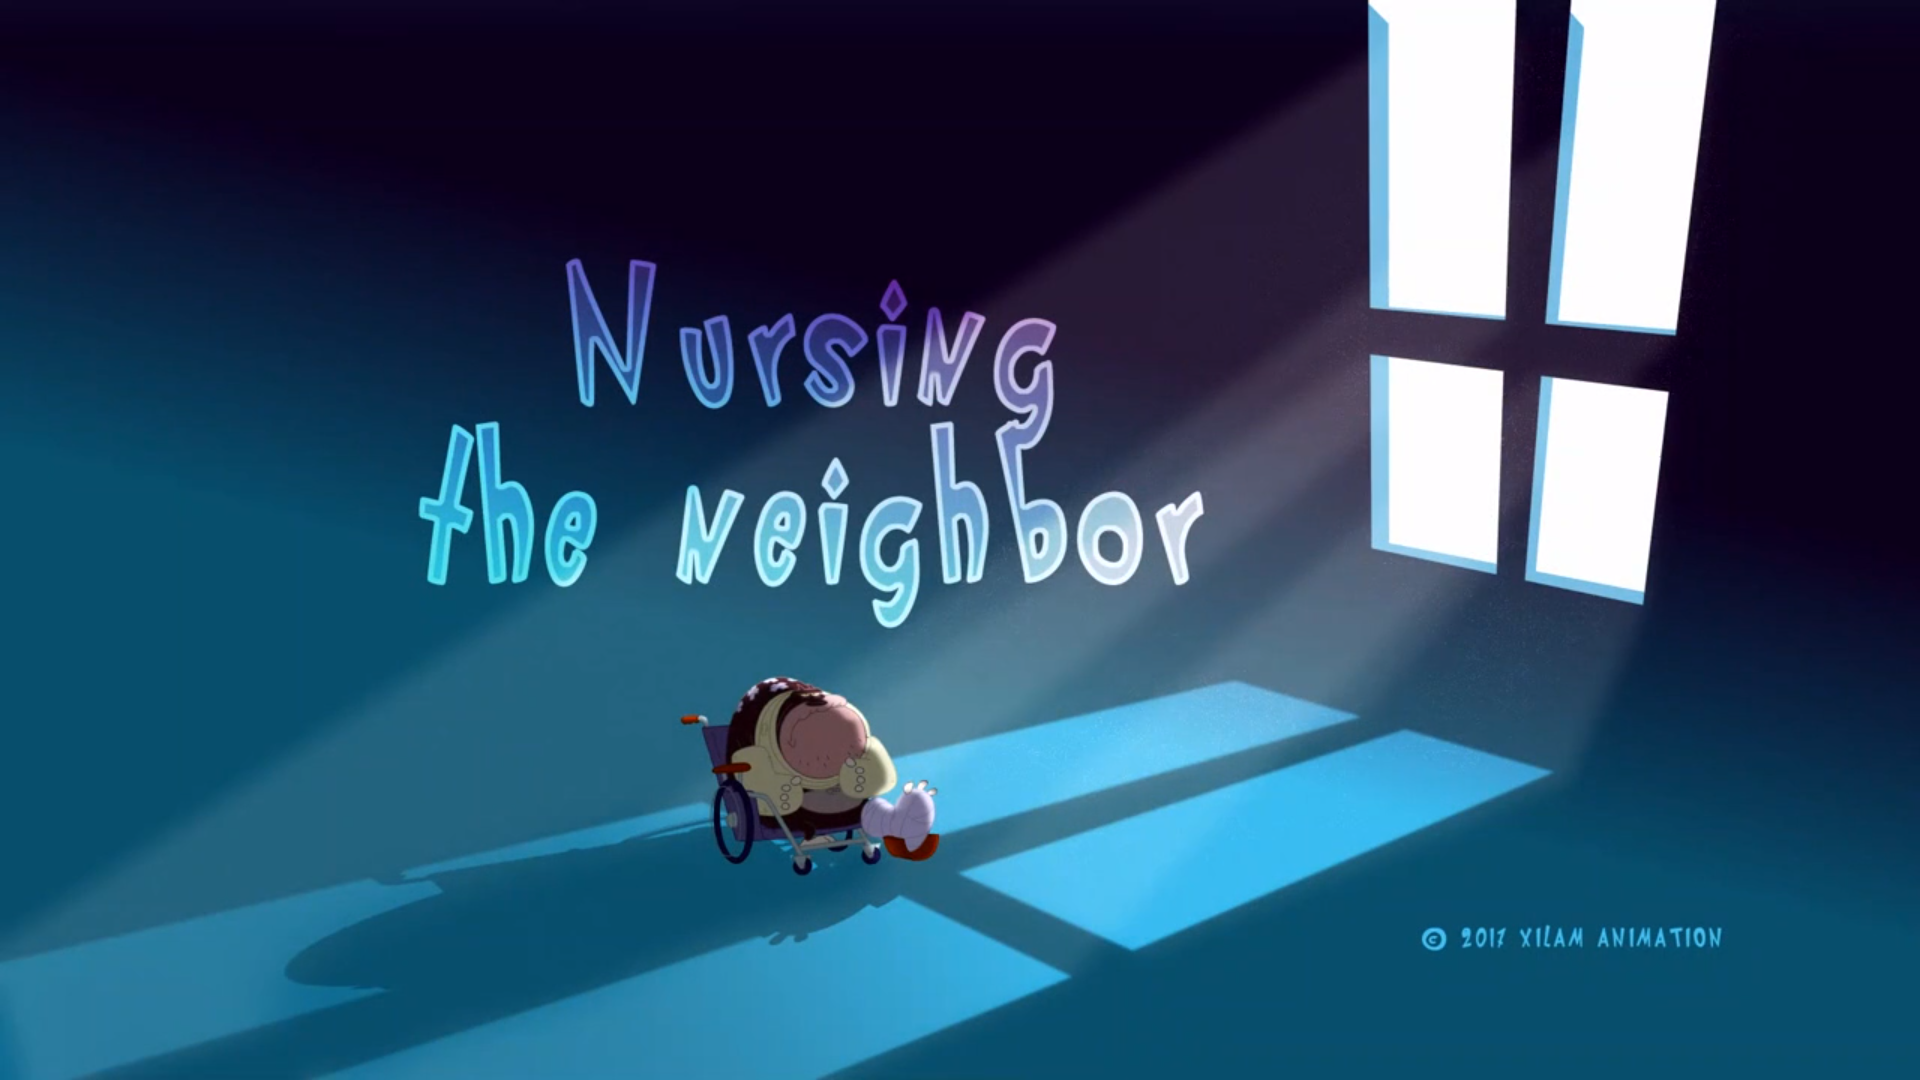 Nursing the Neighbor